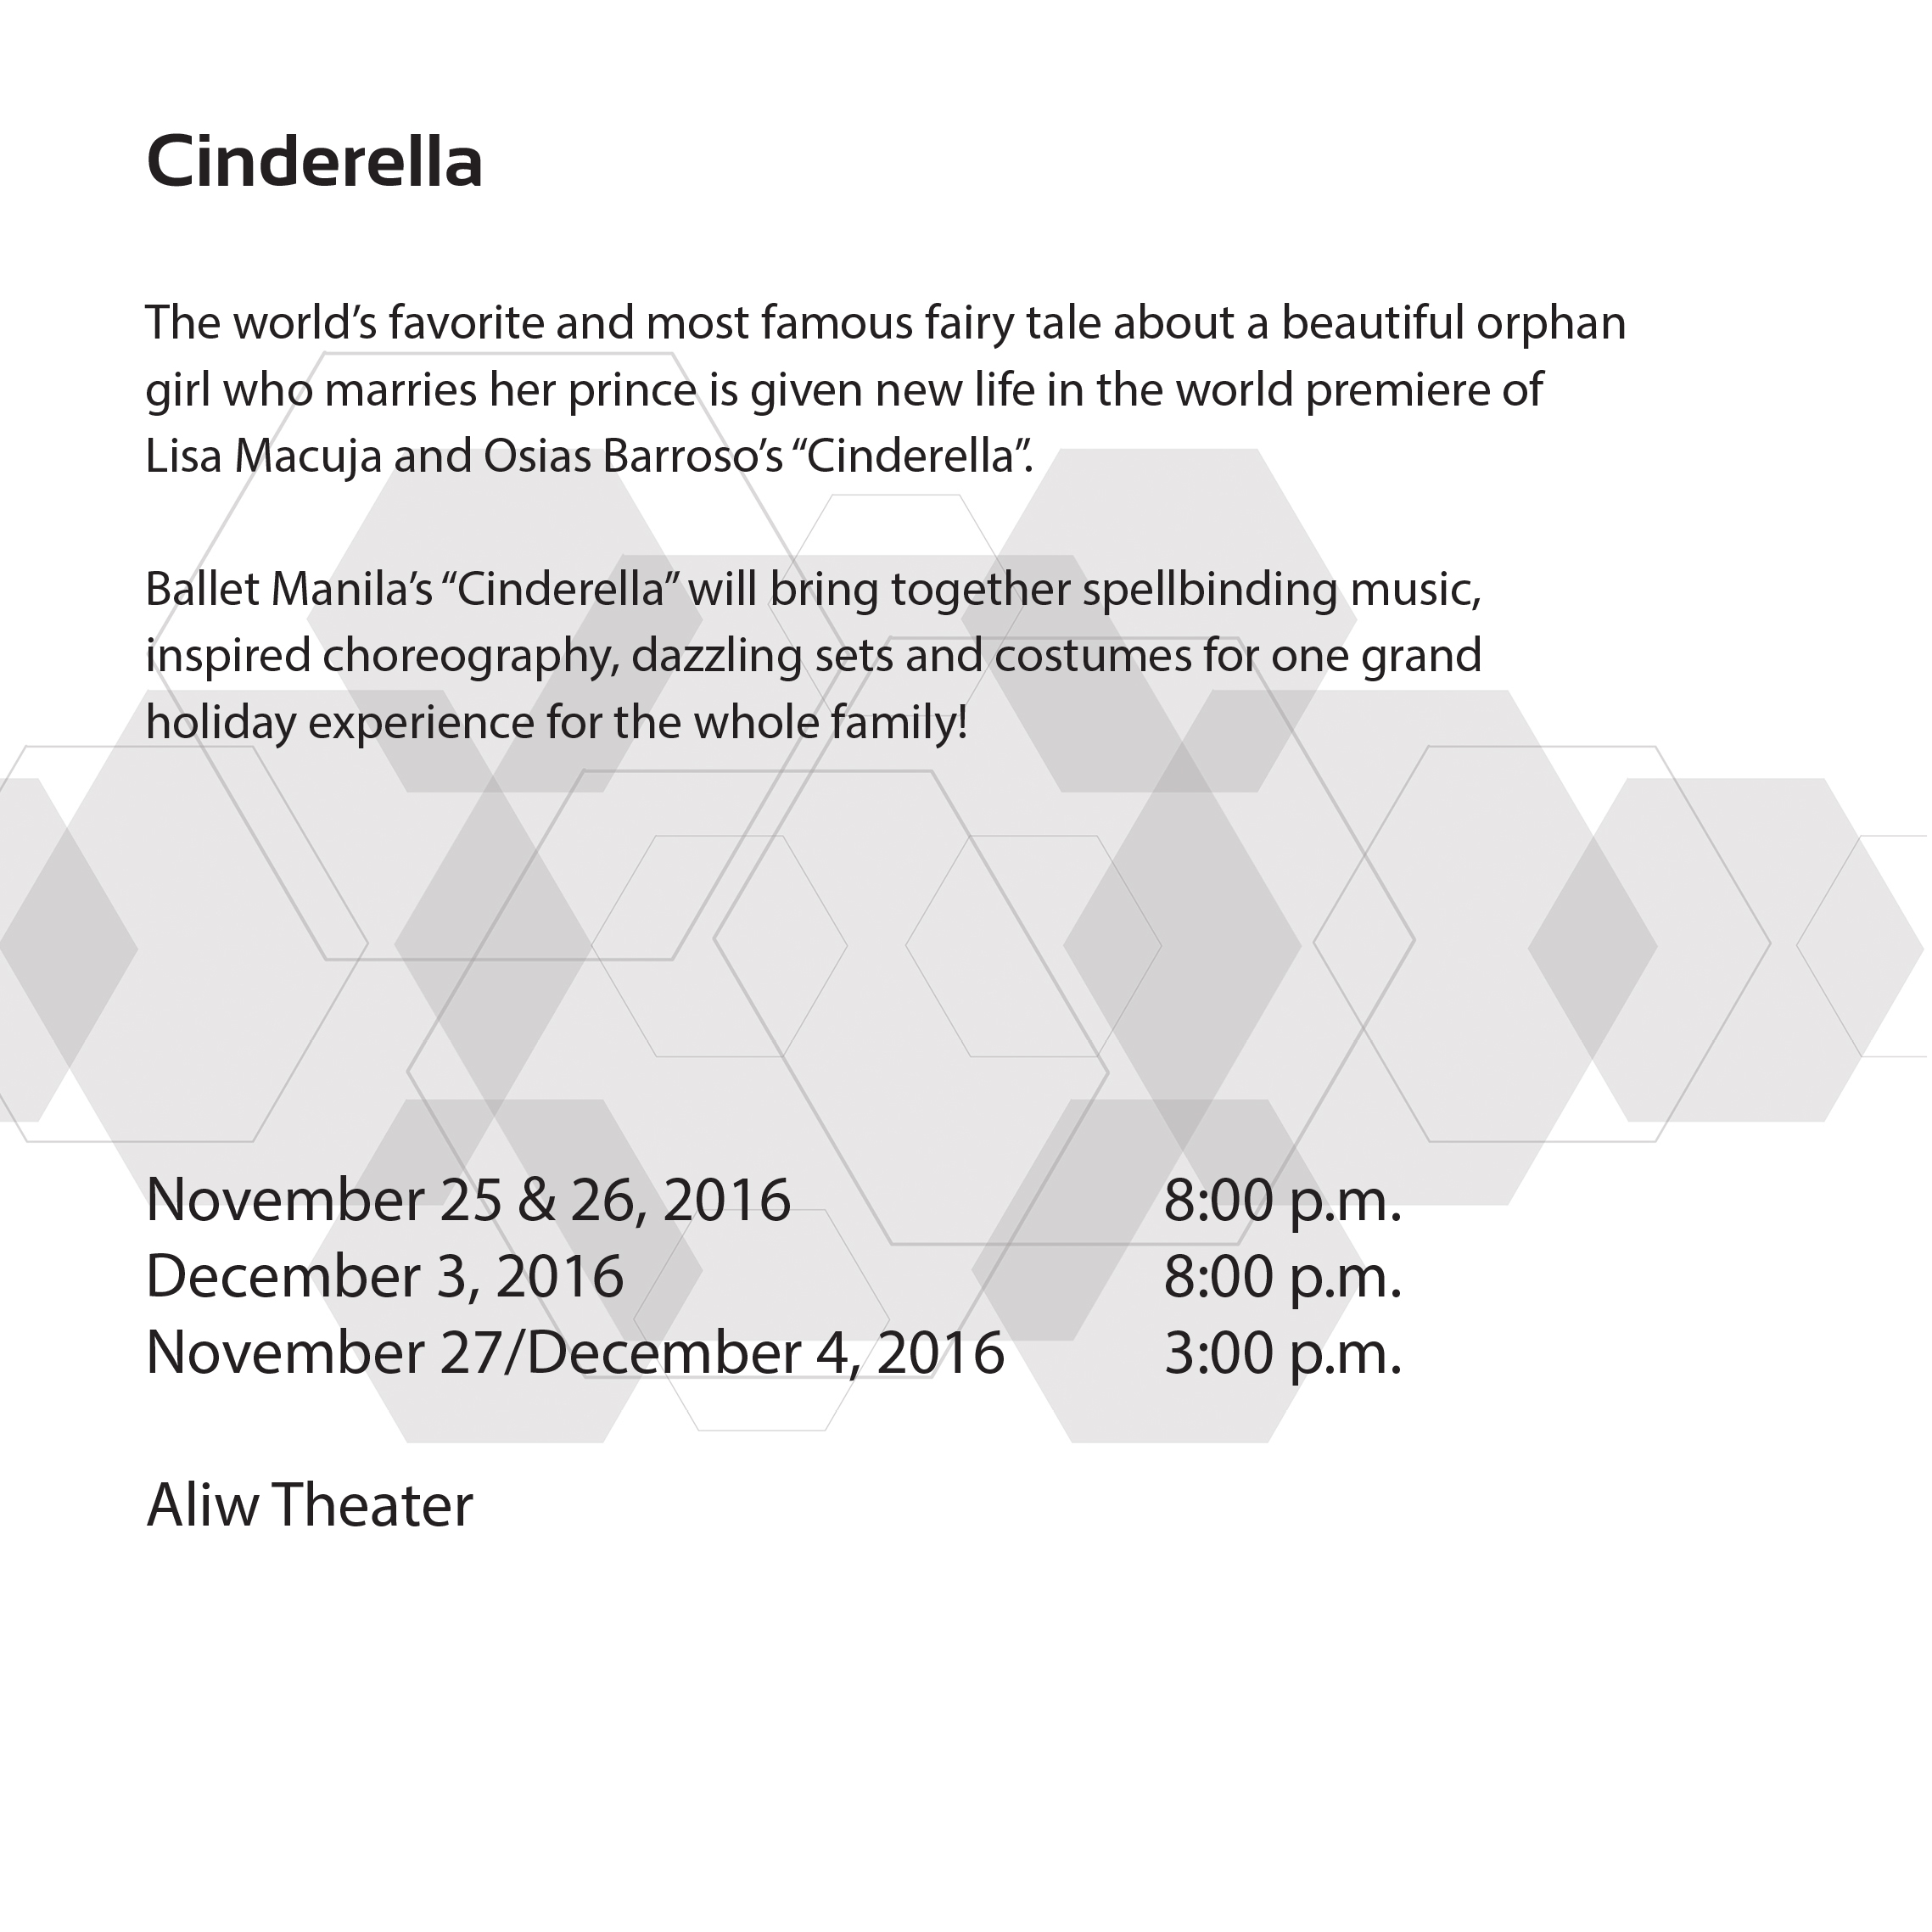 CINDERELLA-DESCRIPTION